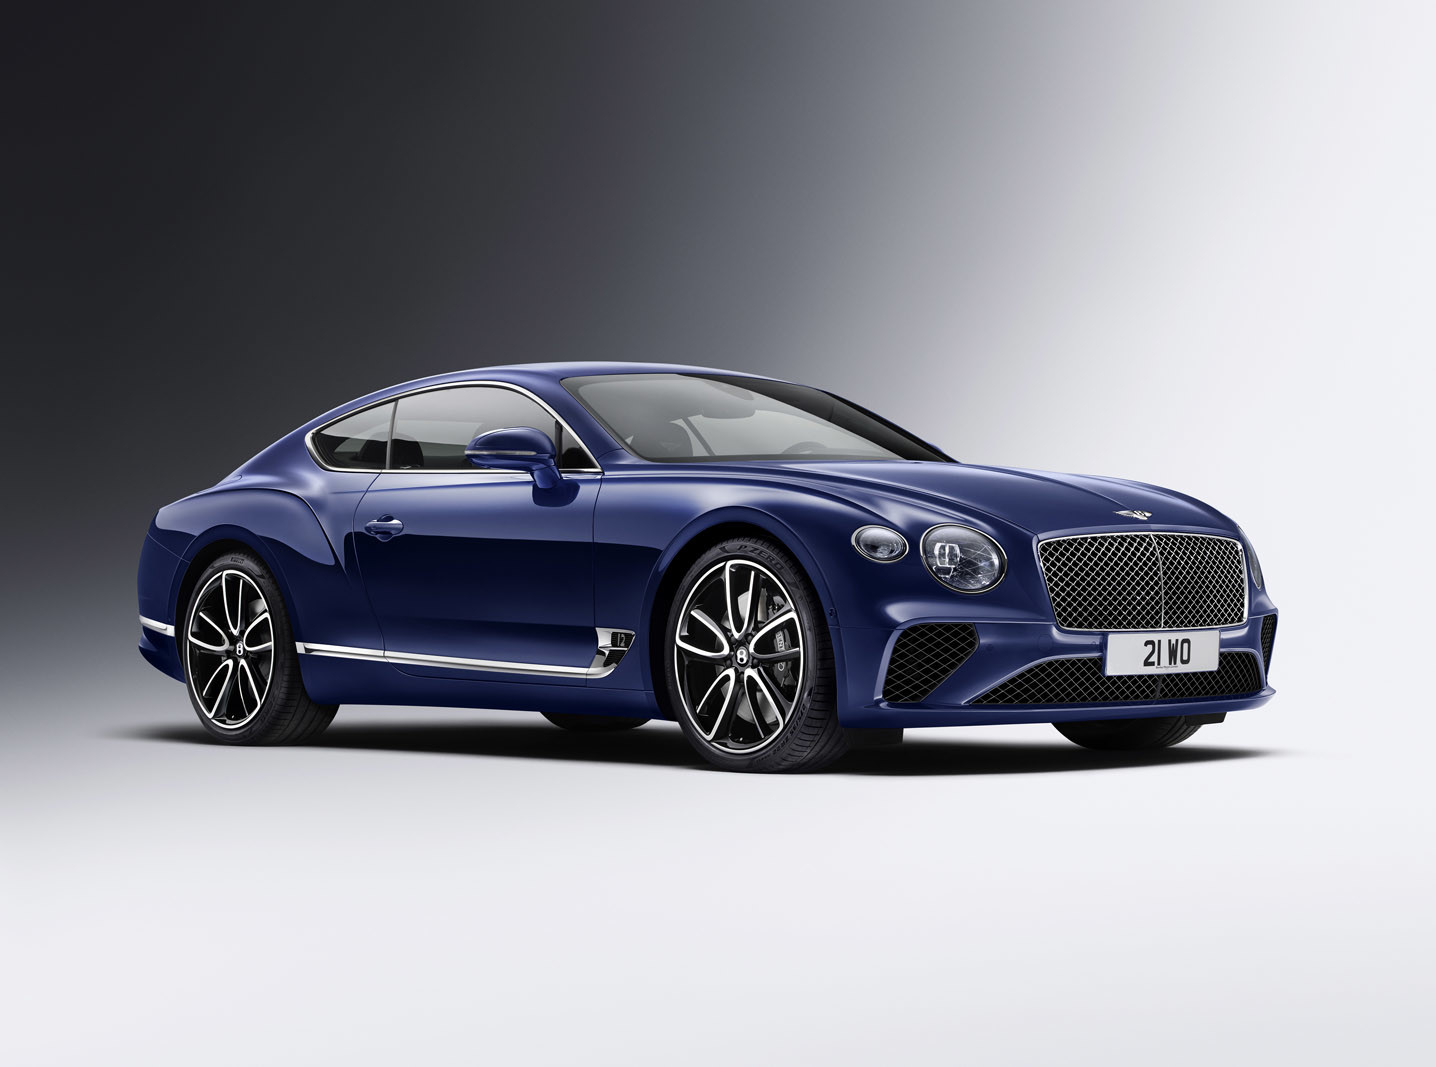 Foto de Bentley Continental GT 2018 (36/36)